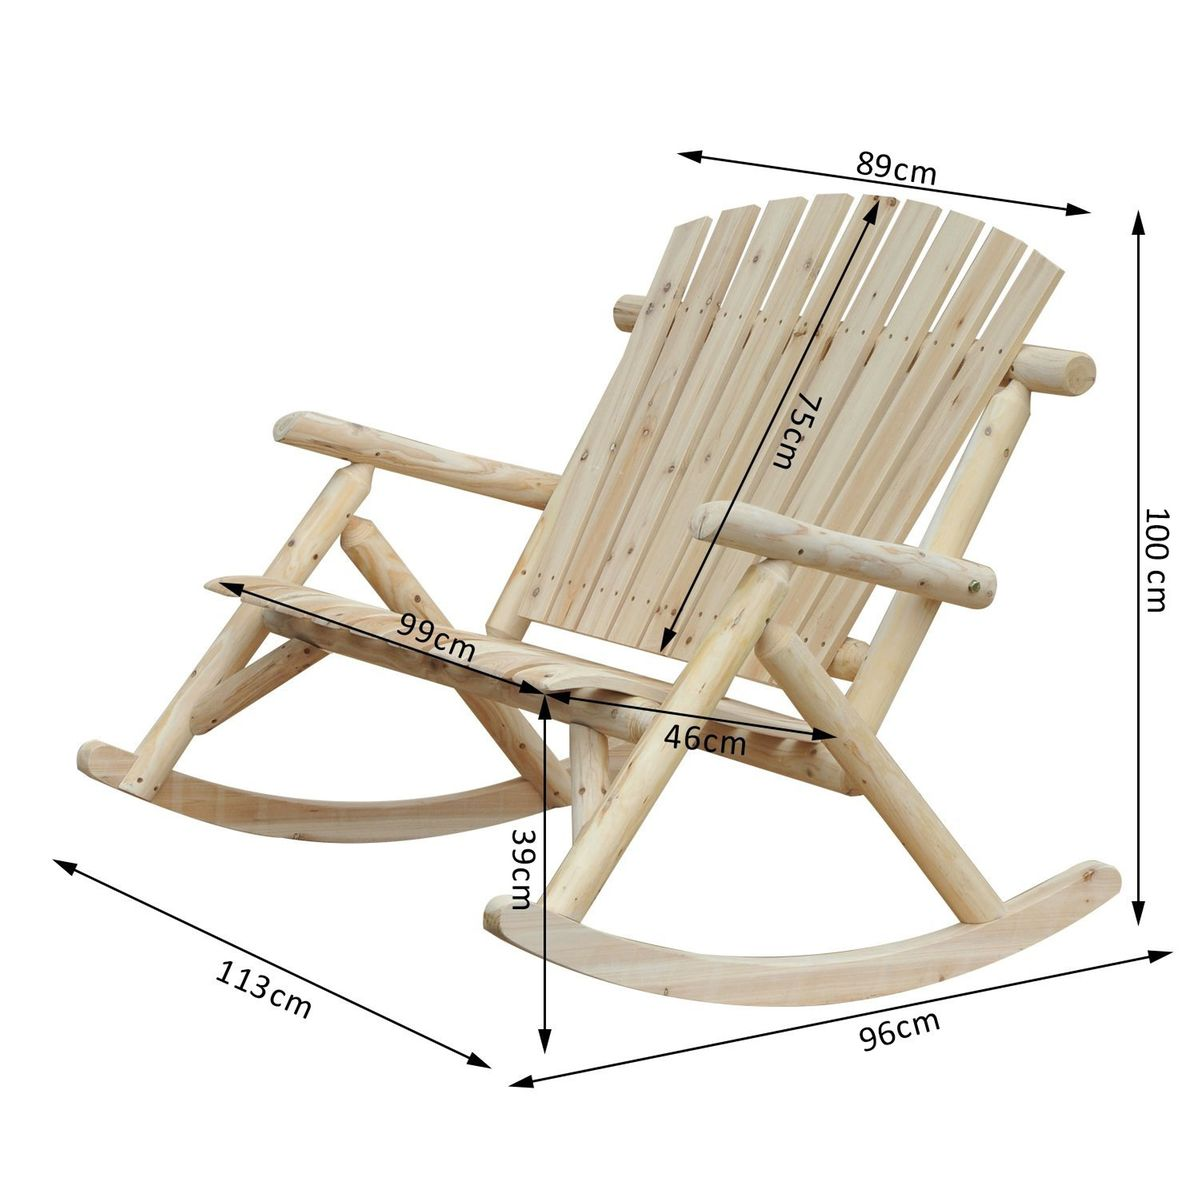 Pin On Chairs Old - Rocking Chair De Jardin